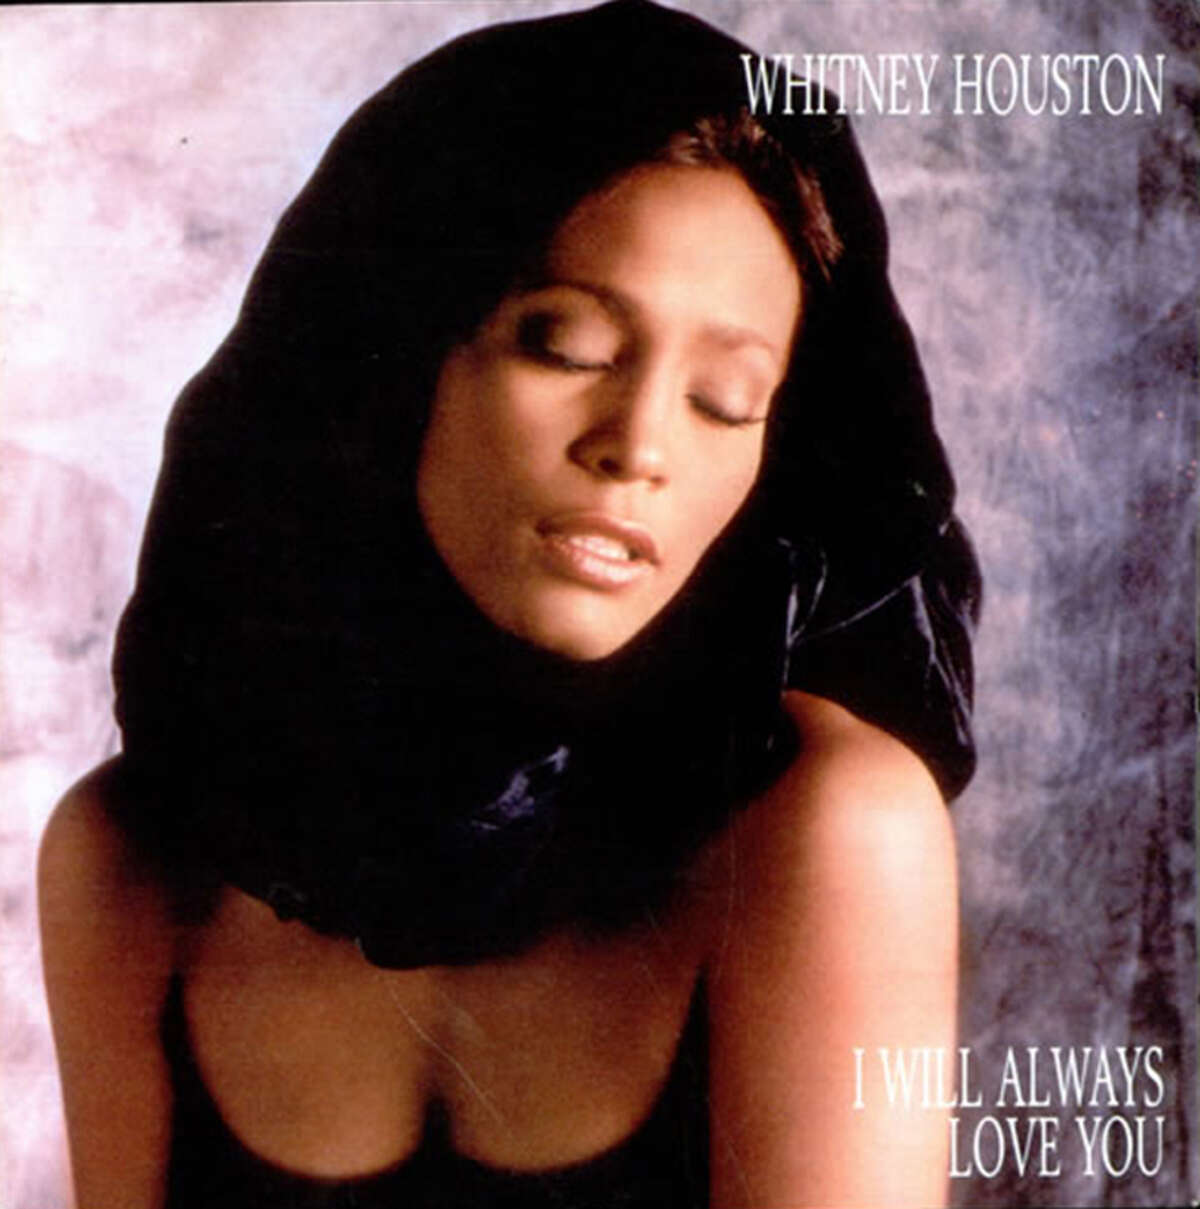 I WILL ALWAYS LOVE YOU Whitney Houston - 1992Written and originally recorded by country star Dolly Parton in 1974. Featured in the movie